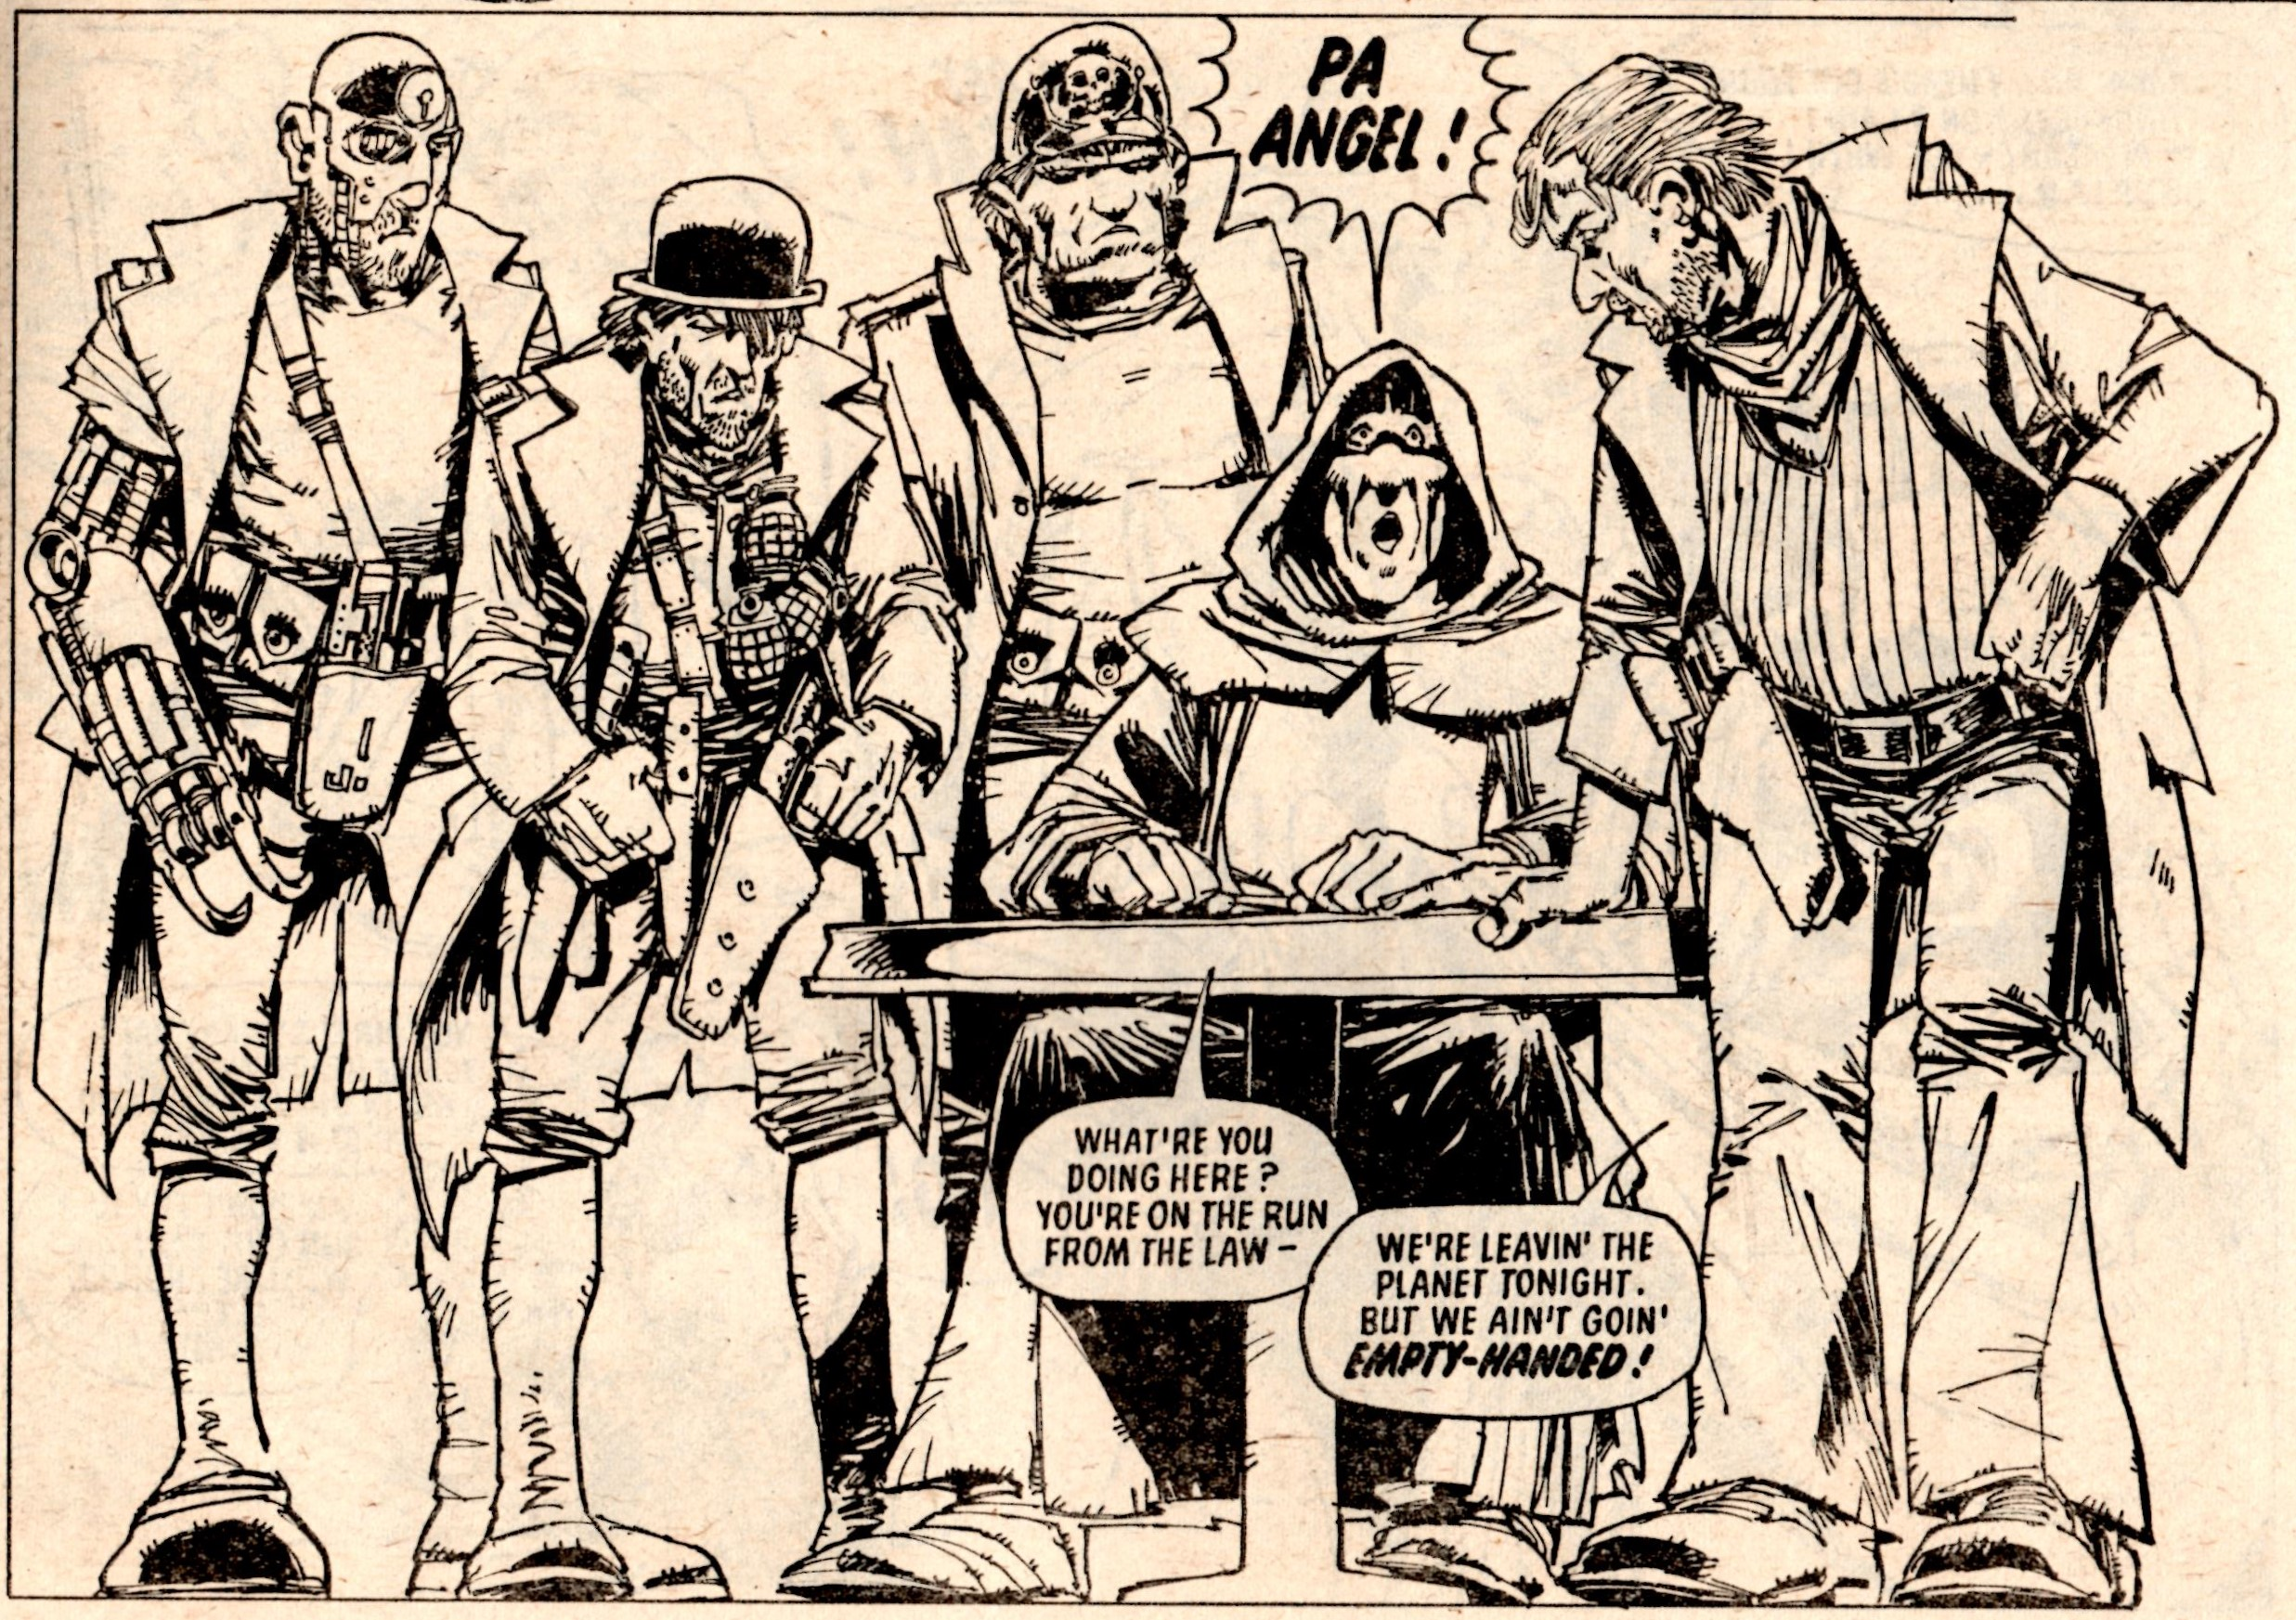 Judge Dredd: The Judge Child part 5 (2000AD, Prog 160, 12 April 1980): John Wagner (writer), Mike McMahon (artist)